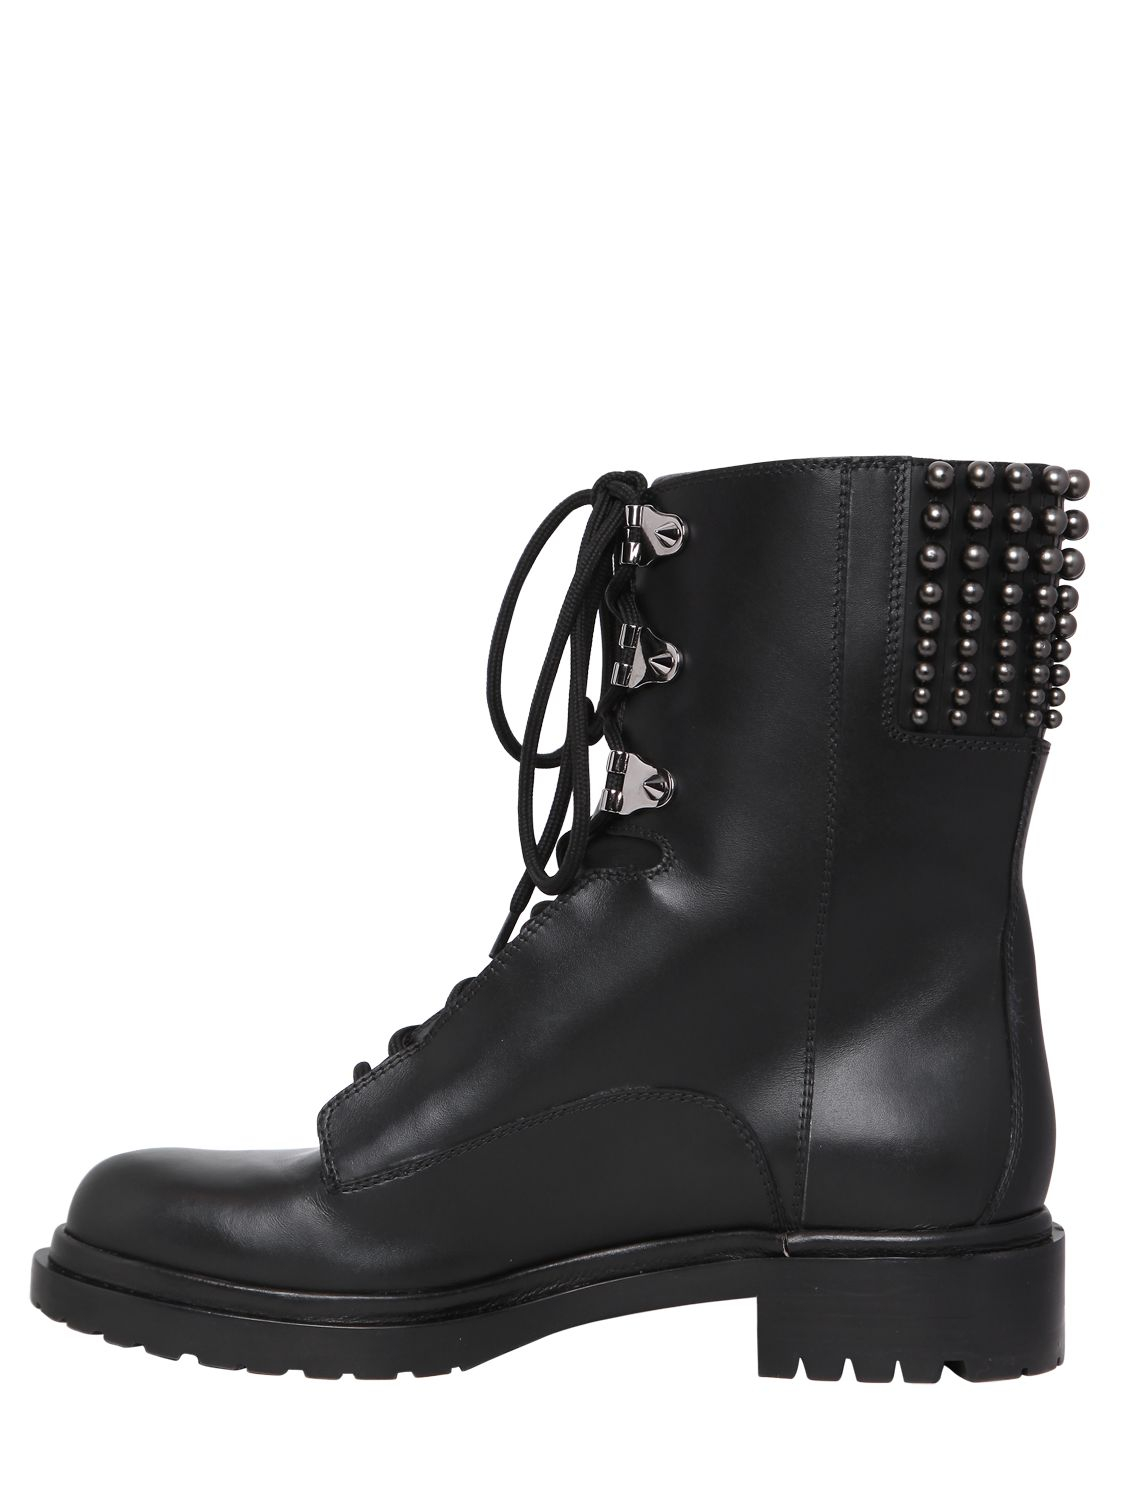 Lyst Sergio Rossi 30mm Rockstar Leather Combat Boots In